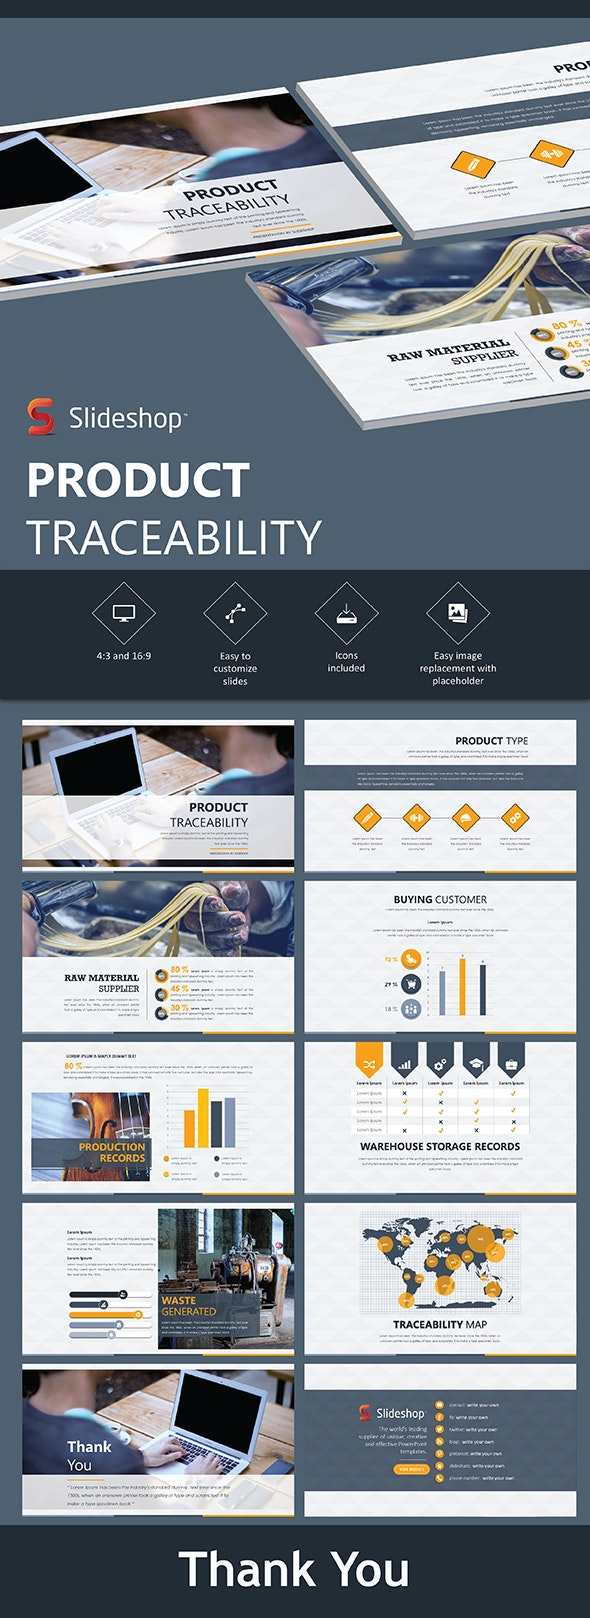 Product Traceability - PowerPoint Templates Presentation Templates